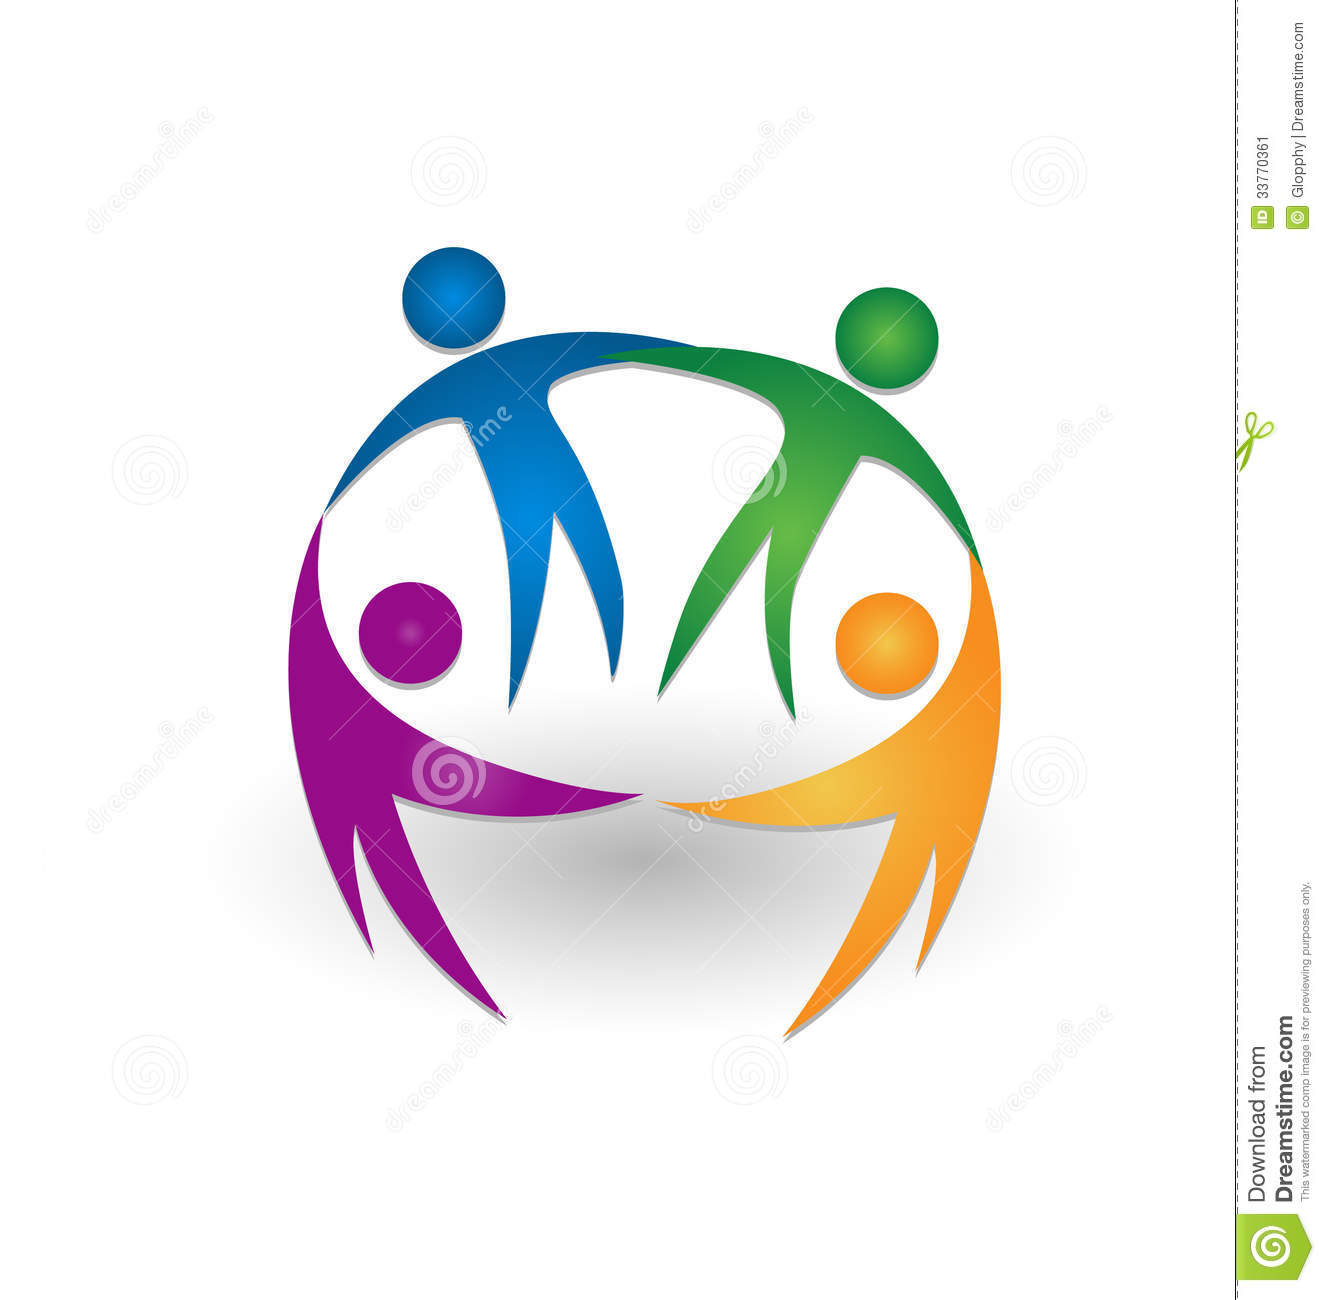 People Together Teamwork Logo Stock Image - Image: 33770361